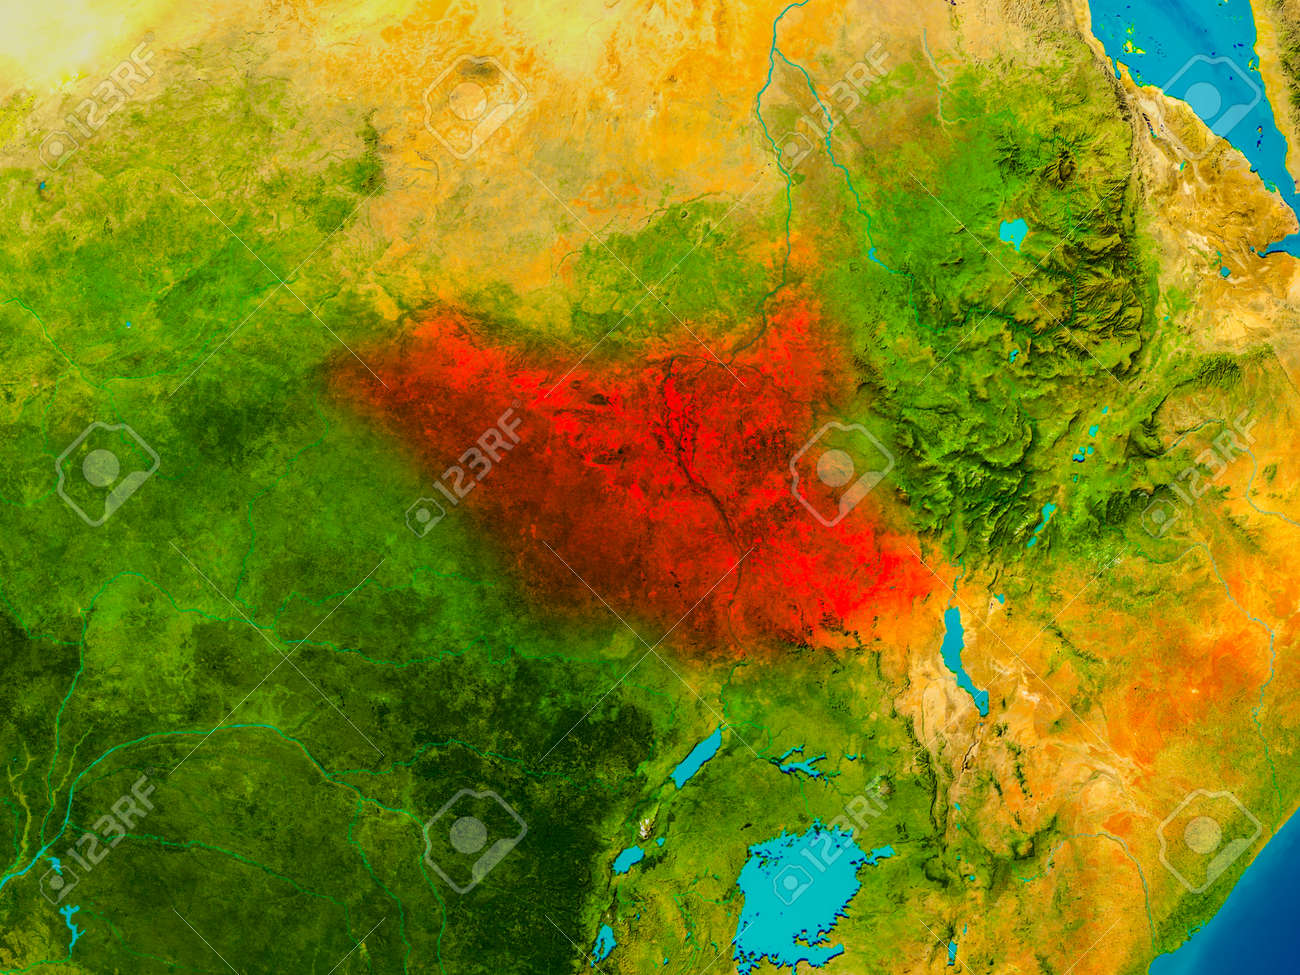 South Sudan Highlighted In Red On Physical Map 3D Illustration